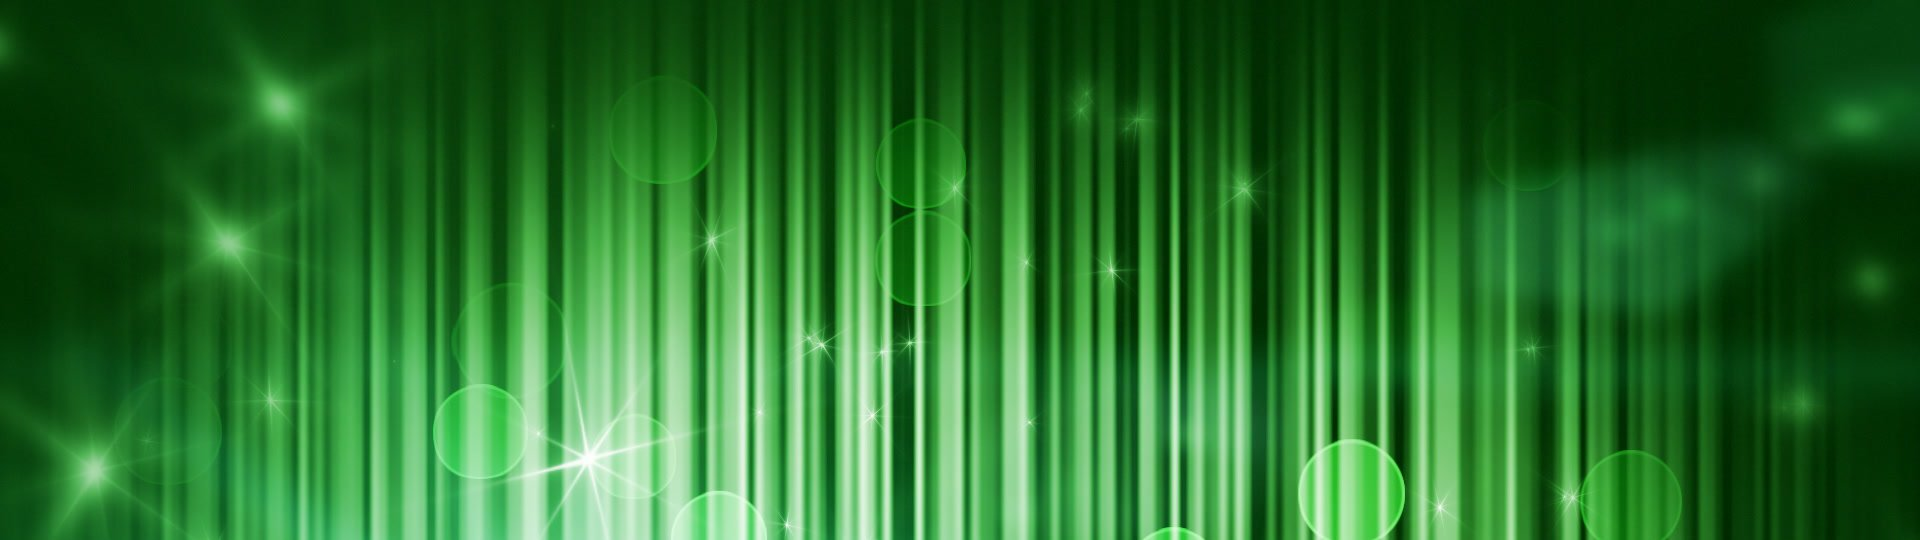 Stars lights and vertical stripes green loop background | stars, lights and vertical stripes. Computer generated seamless loop abstract motion green background - ID:12882